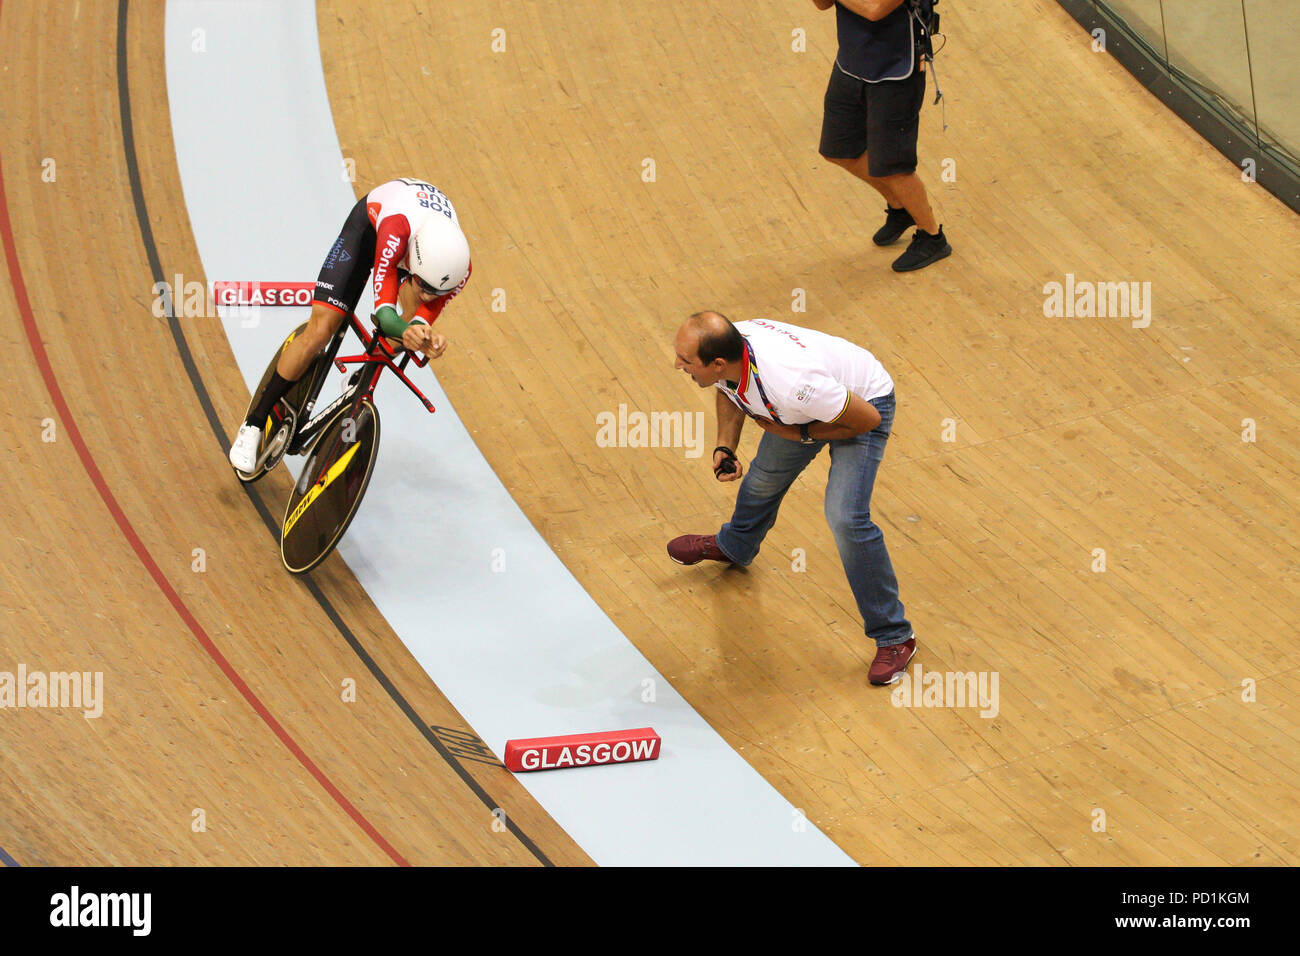 Glasgow, UK. 5 August 2018. European Championships Sir Chris Hoy Velodrome. Day 4. Domenic Weinstein GER beats  Ivo Oliveira POR to win gold in Men's 4000m Individual Pursuit. Credit Alan Oliver / Alamy Live News Stock Photo